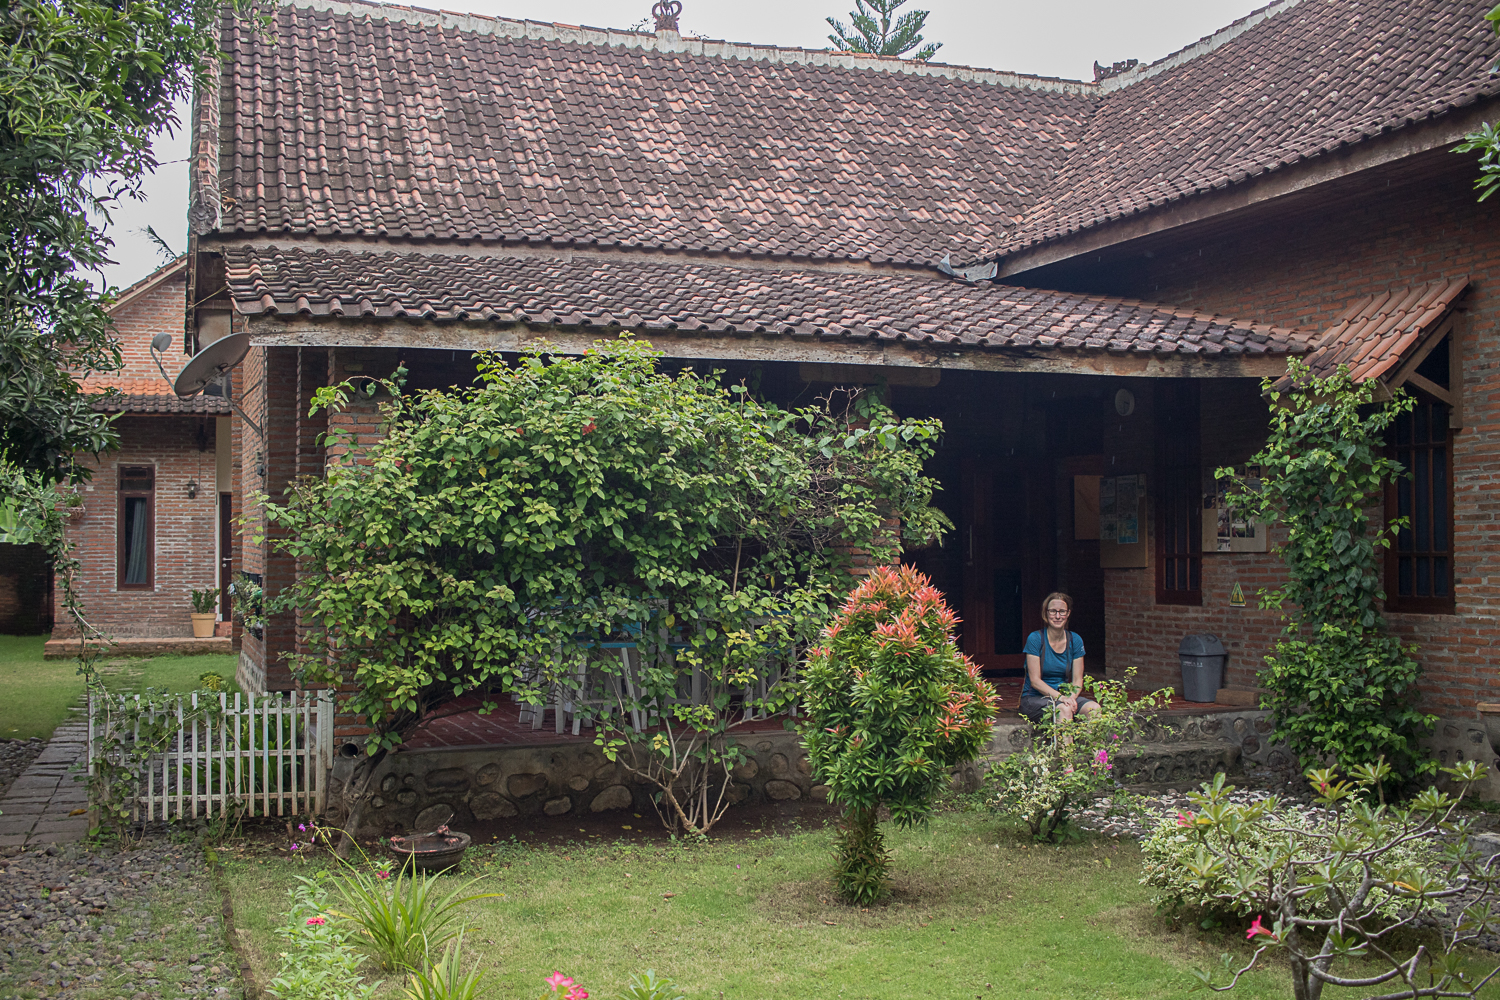 Balorean EcoLodge, a lovely place to stay in the village near Baluran NP.